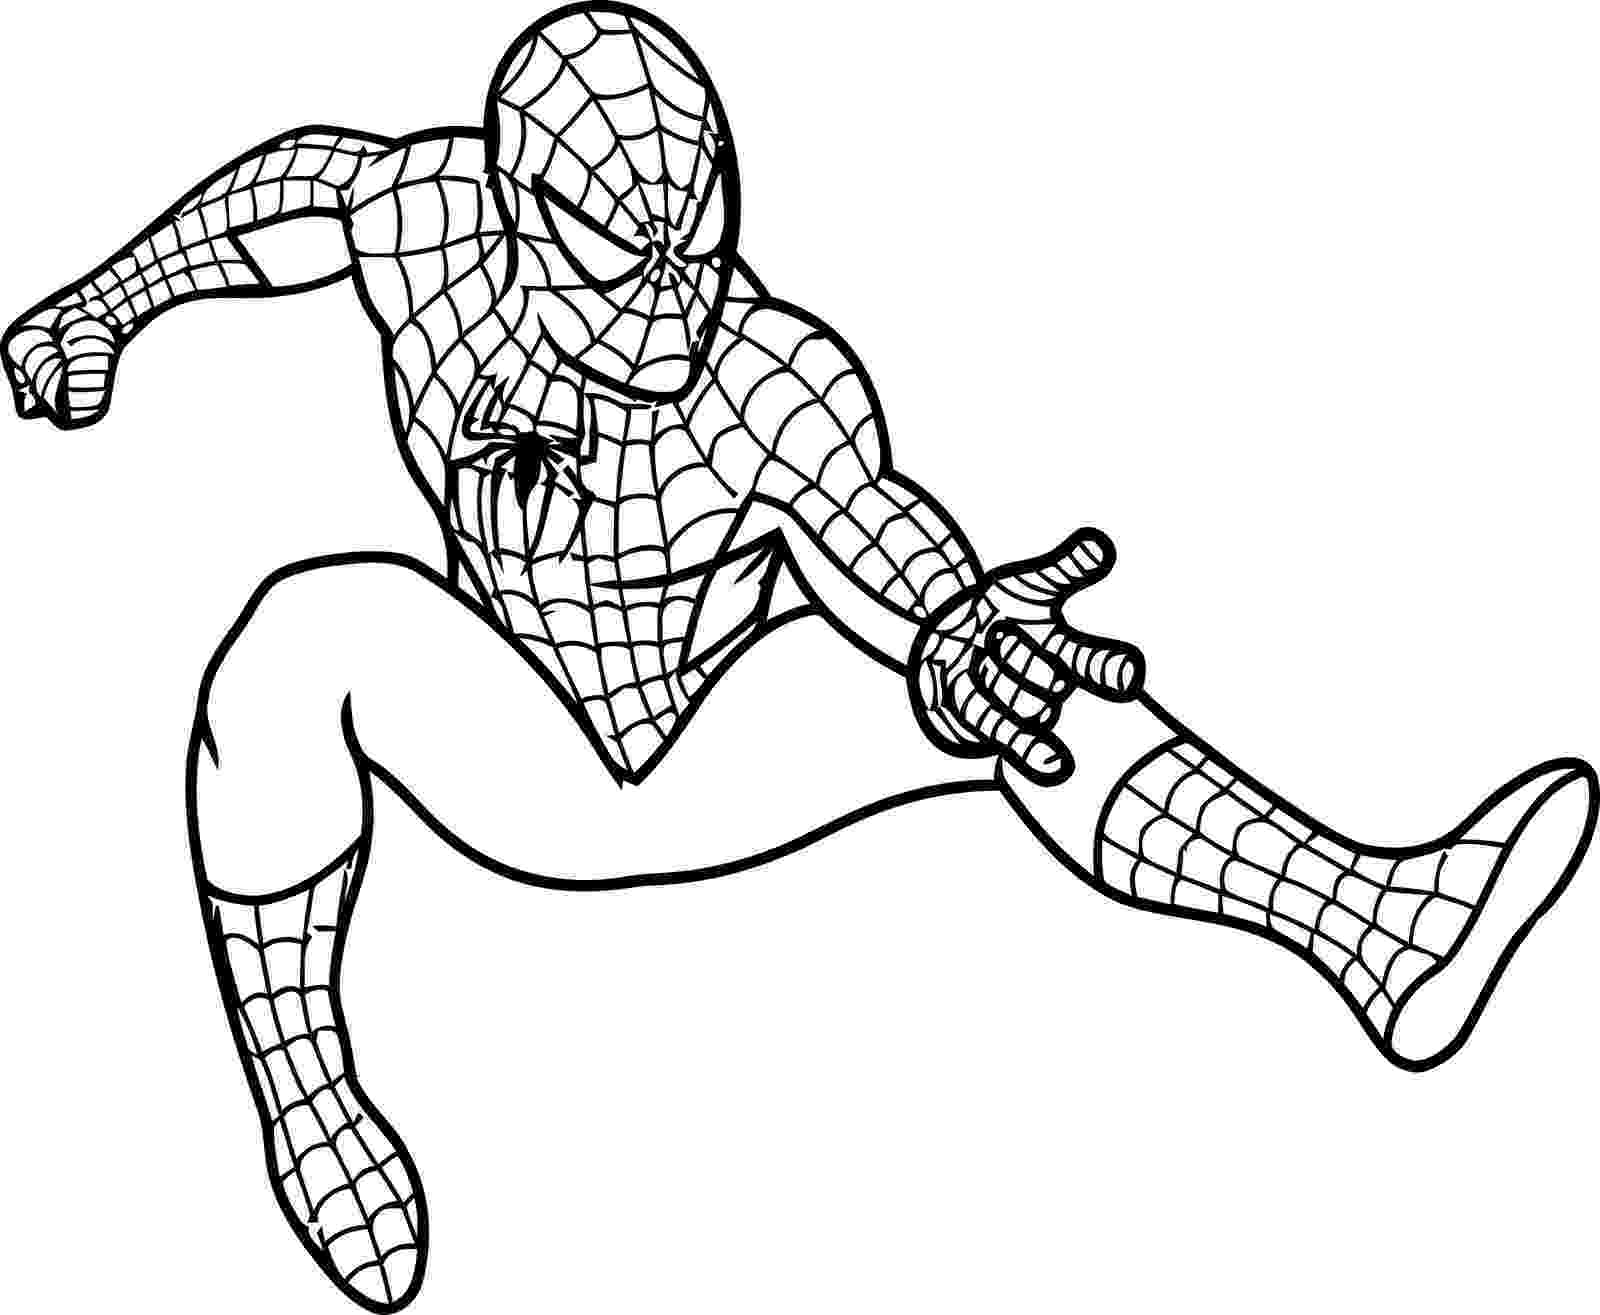 spider man coloring sheet printable spiderman coloring pages for kids cool2bkids man sheet spider coloring